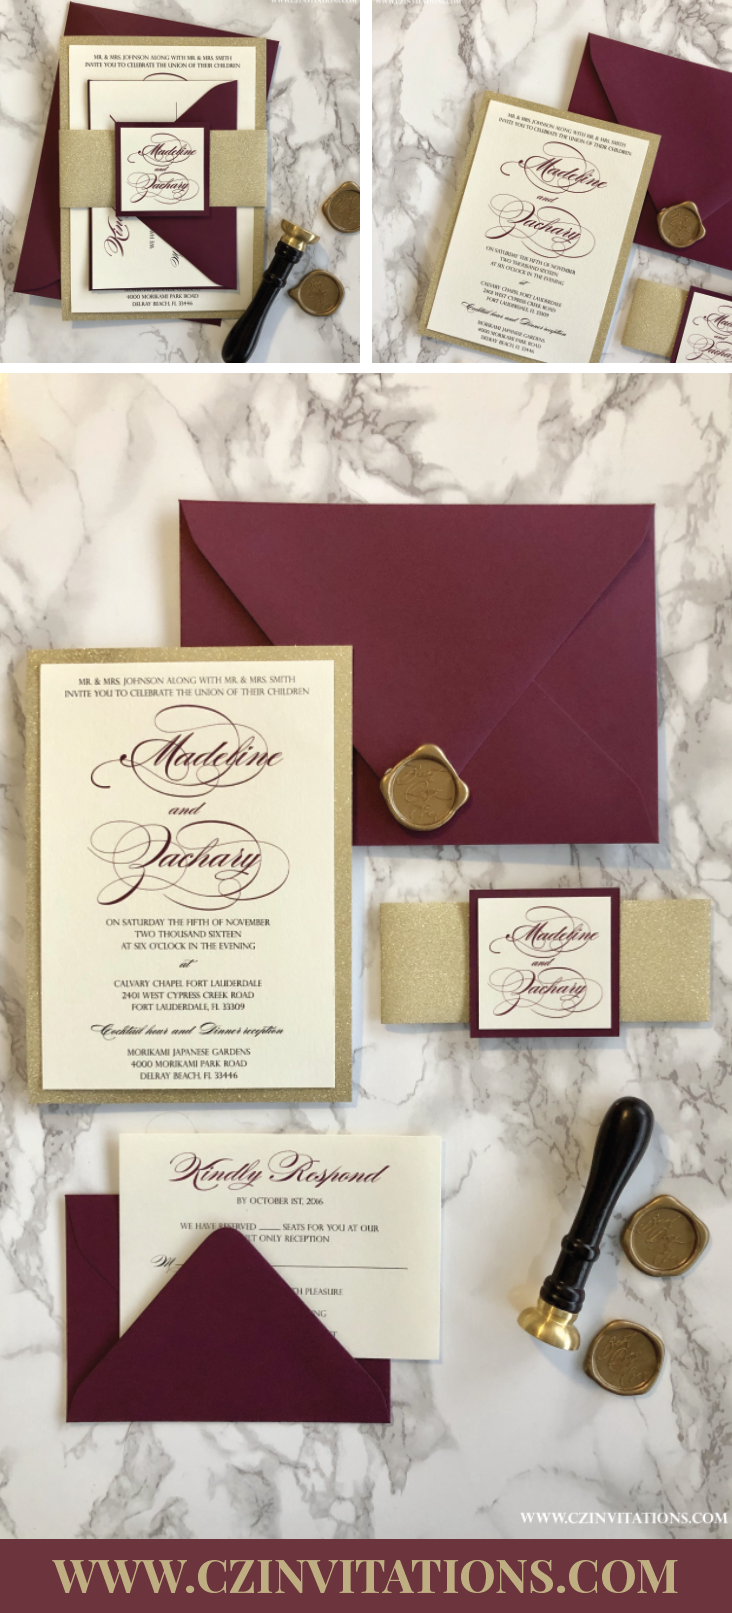 9b085032bd527 This wedding invitation set is stunning and elegant! The Burgundy  complements the gold glitter perfectly, adding a unique feel to the whole  set.